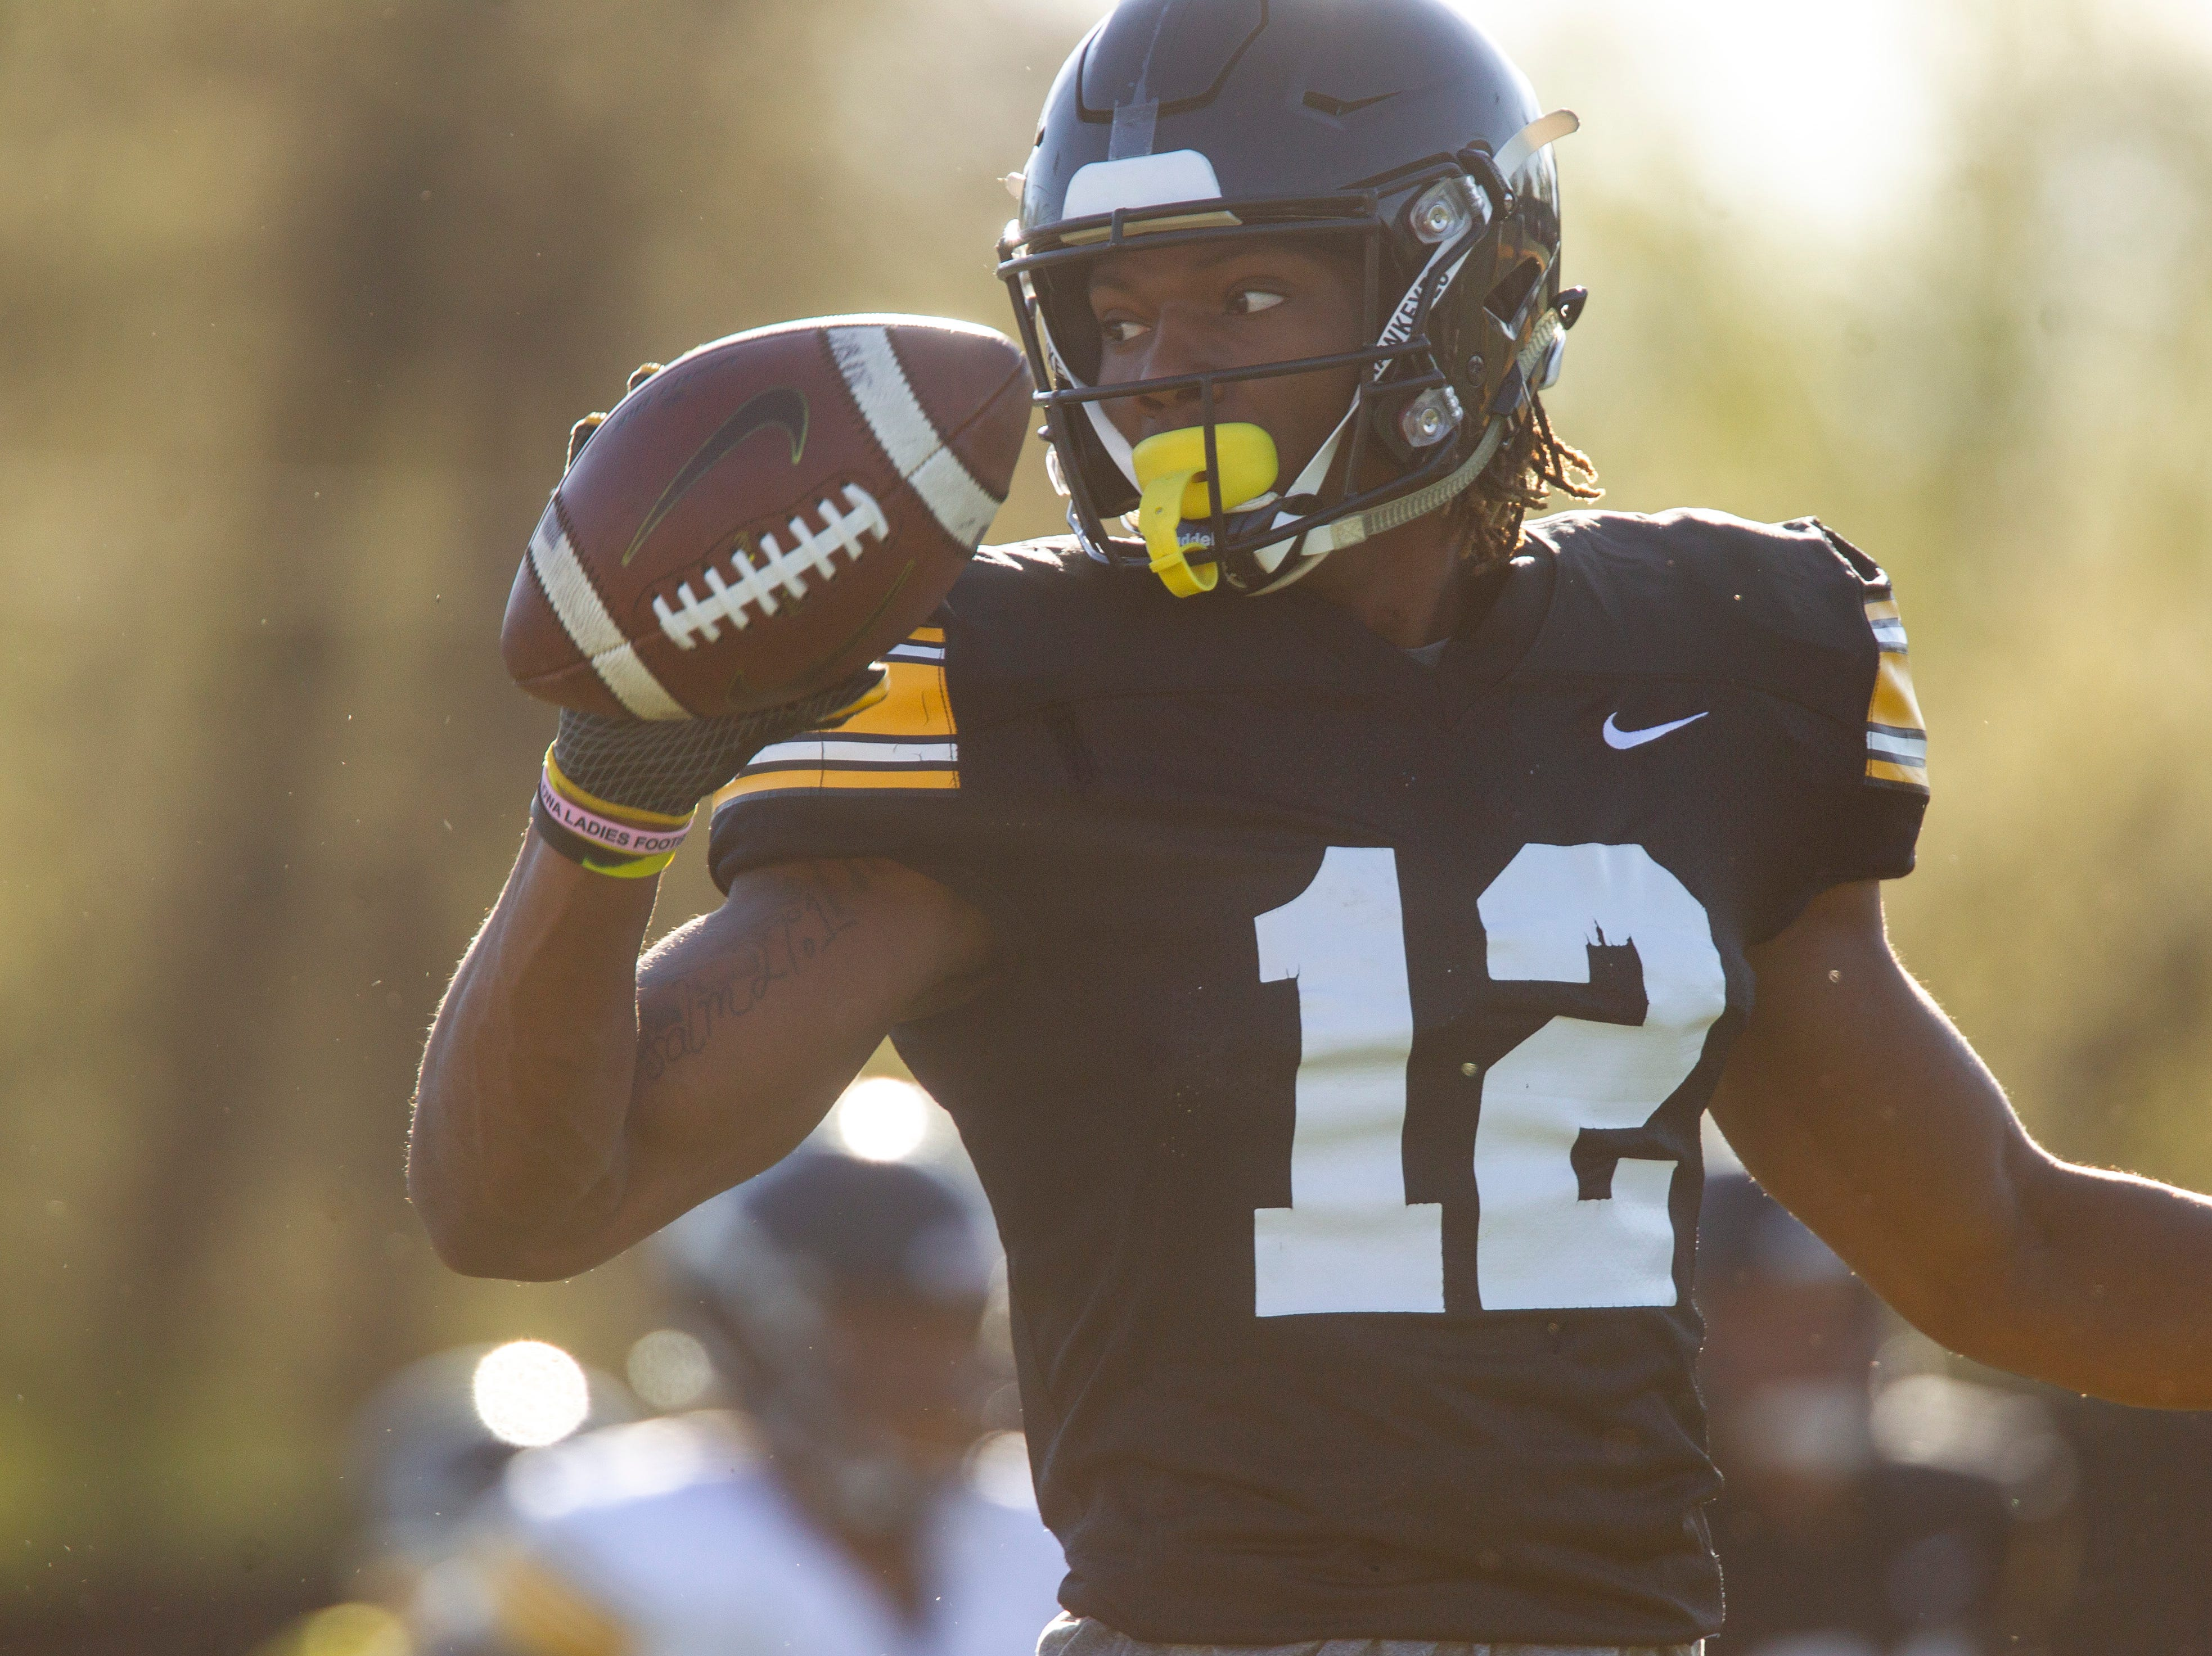 Iowa wide receiver Brandon Smith (12) is pictured during the final spring football practice, Friday, April 26, 2019, at the University of Iowa outdoor practice facility in Iowa City, Iowa.